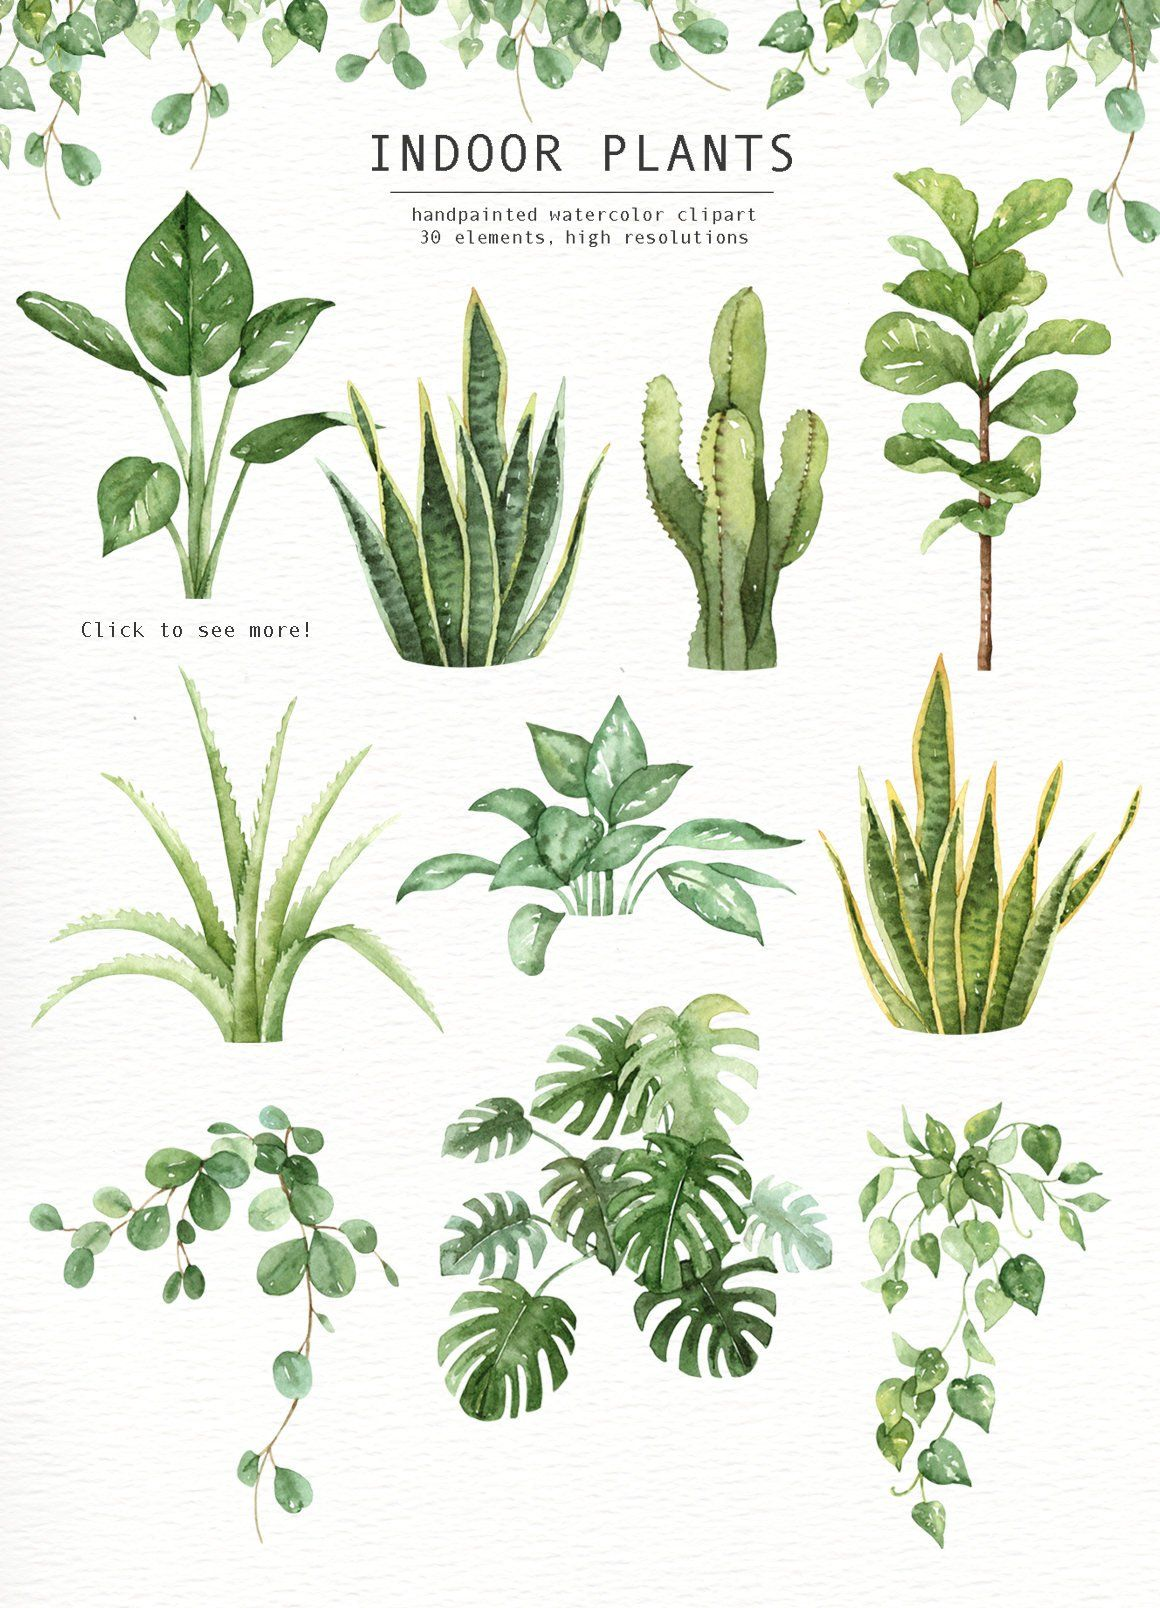 Indoor Plants Watercolor Clipart Watercolour Leaves Watercolor